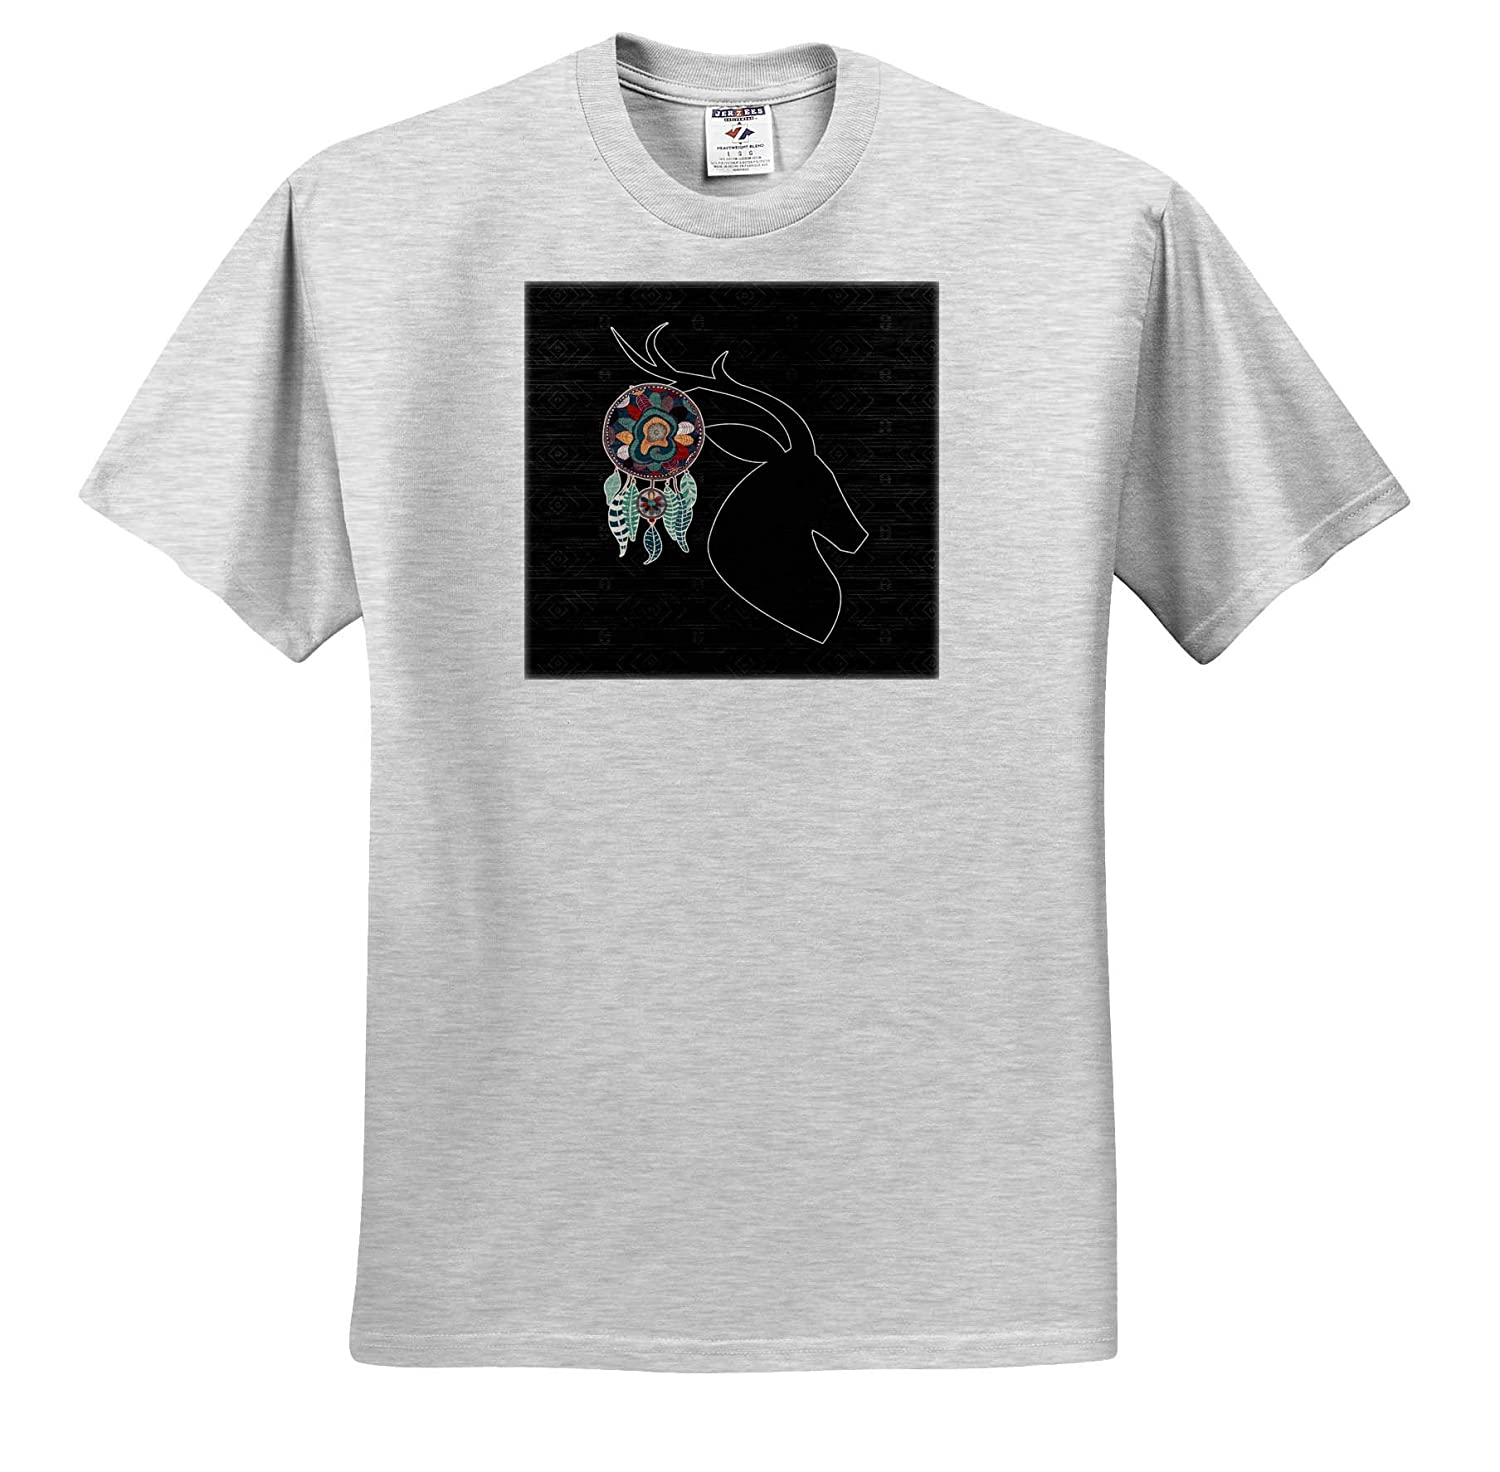 Deer Head Silhouette in Native American Tribal Style and Dream Catcher T-Shirts 3dRose Doreen Erhardt Native American